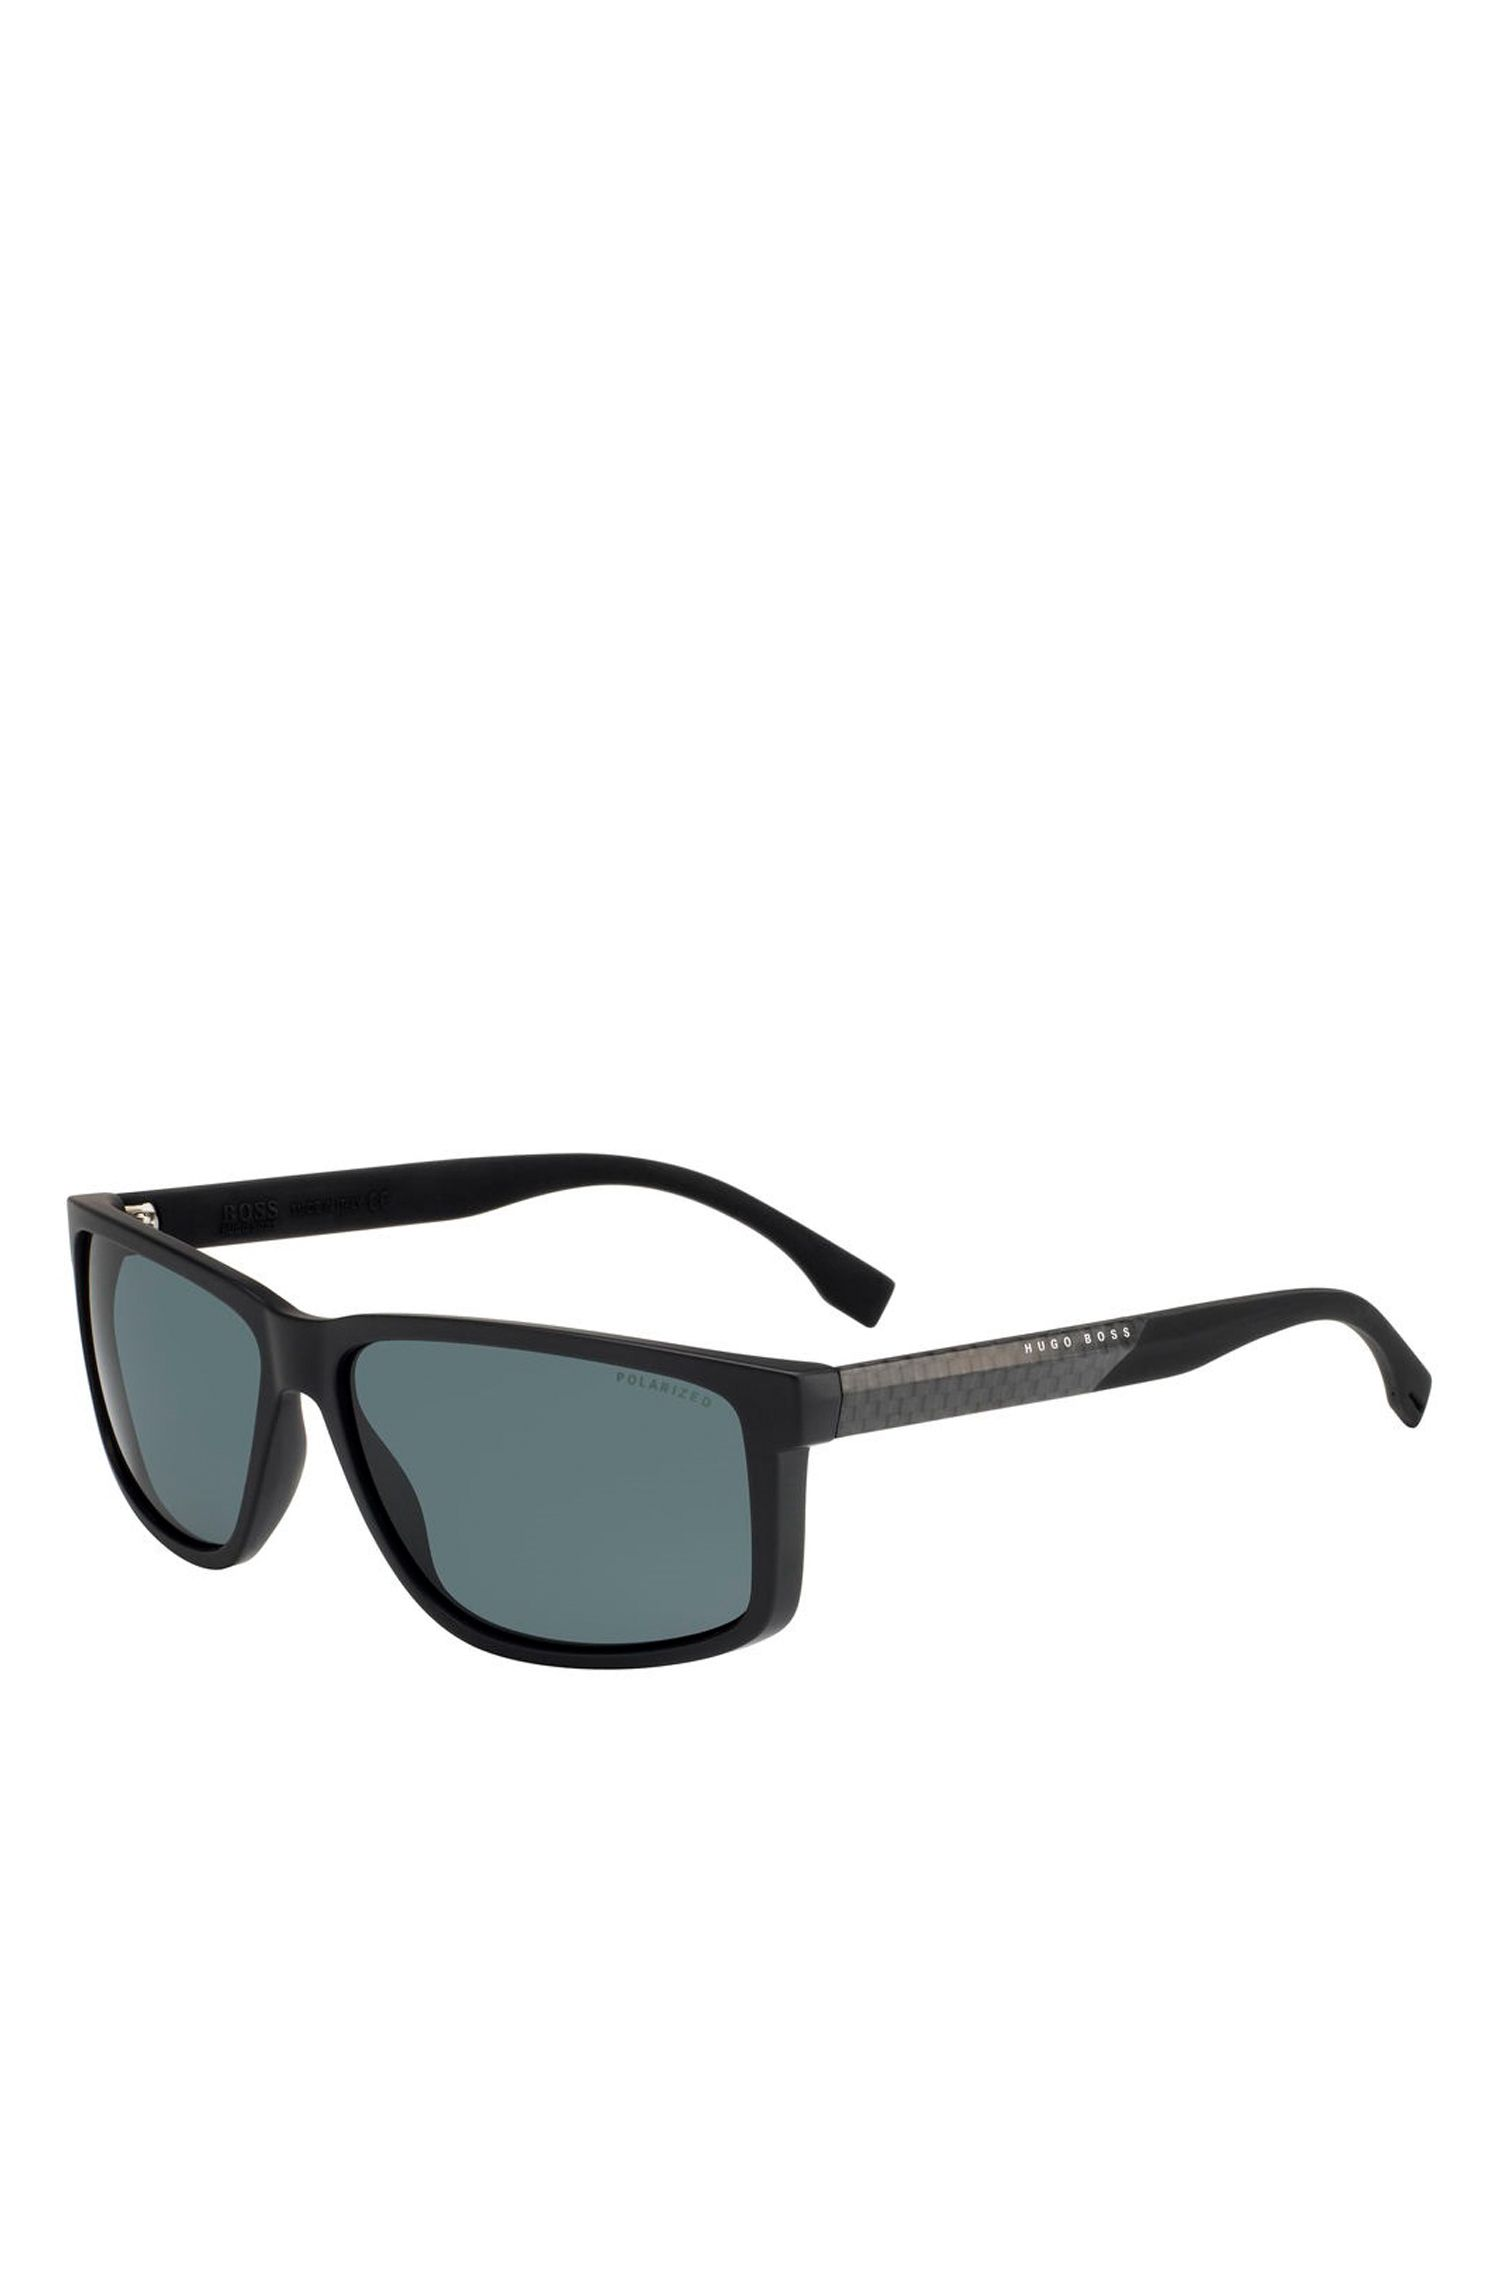 'BOSS 0833S' | Rectangular Carbon Fiber Polarized Sunglasses